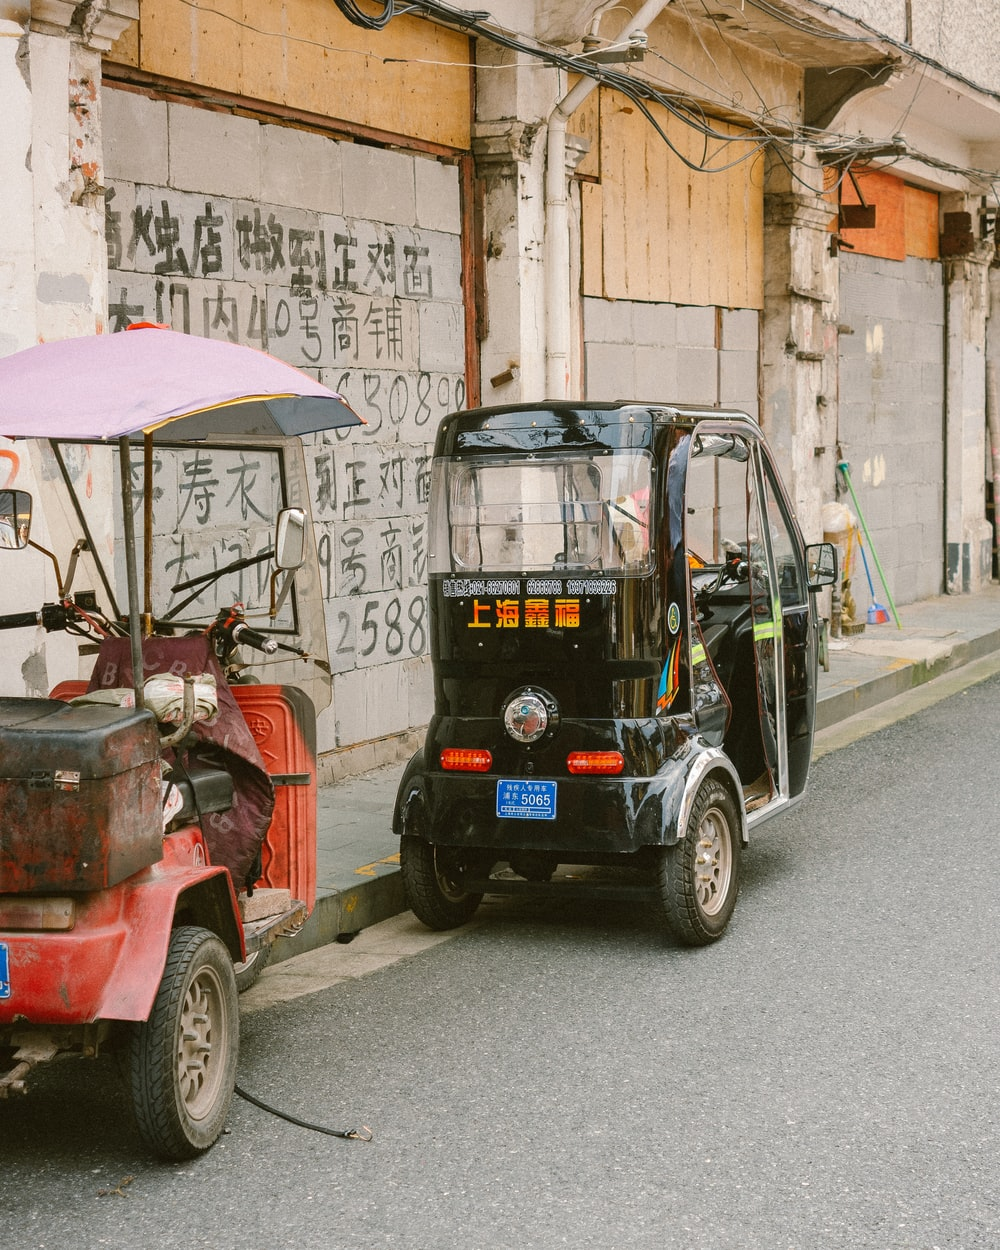 red and black auto rickshaw parked beside brown concrete building during daytime